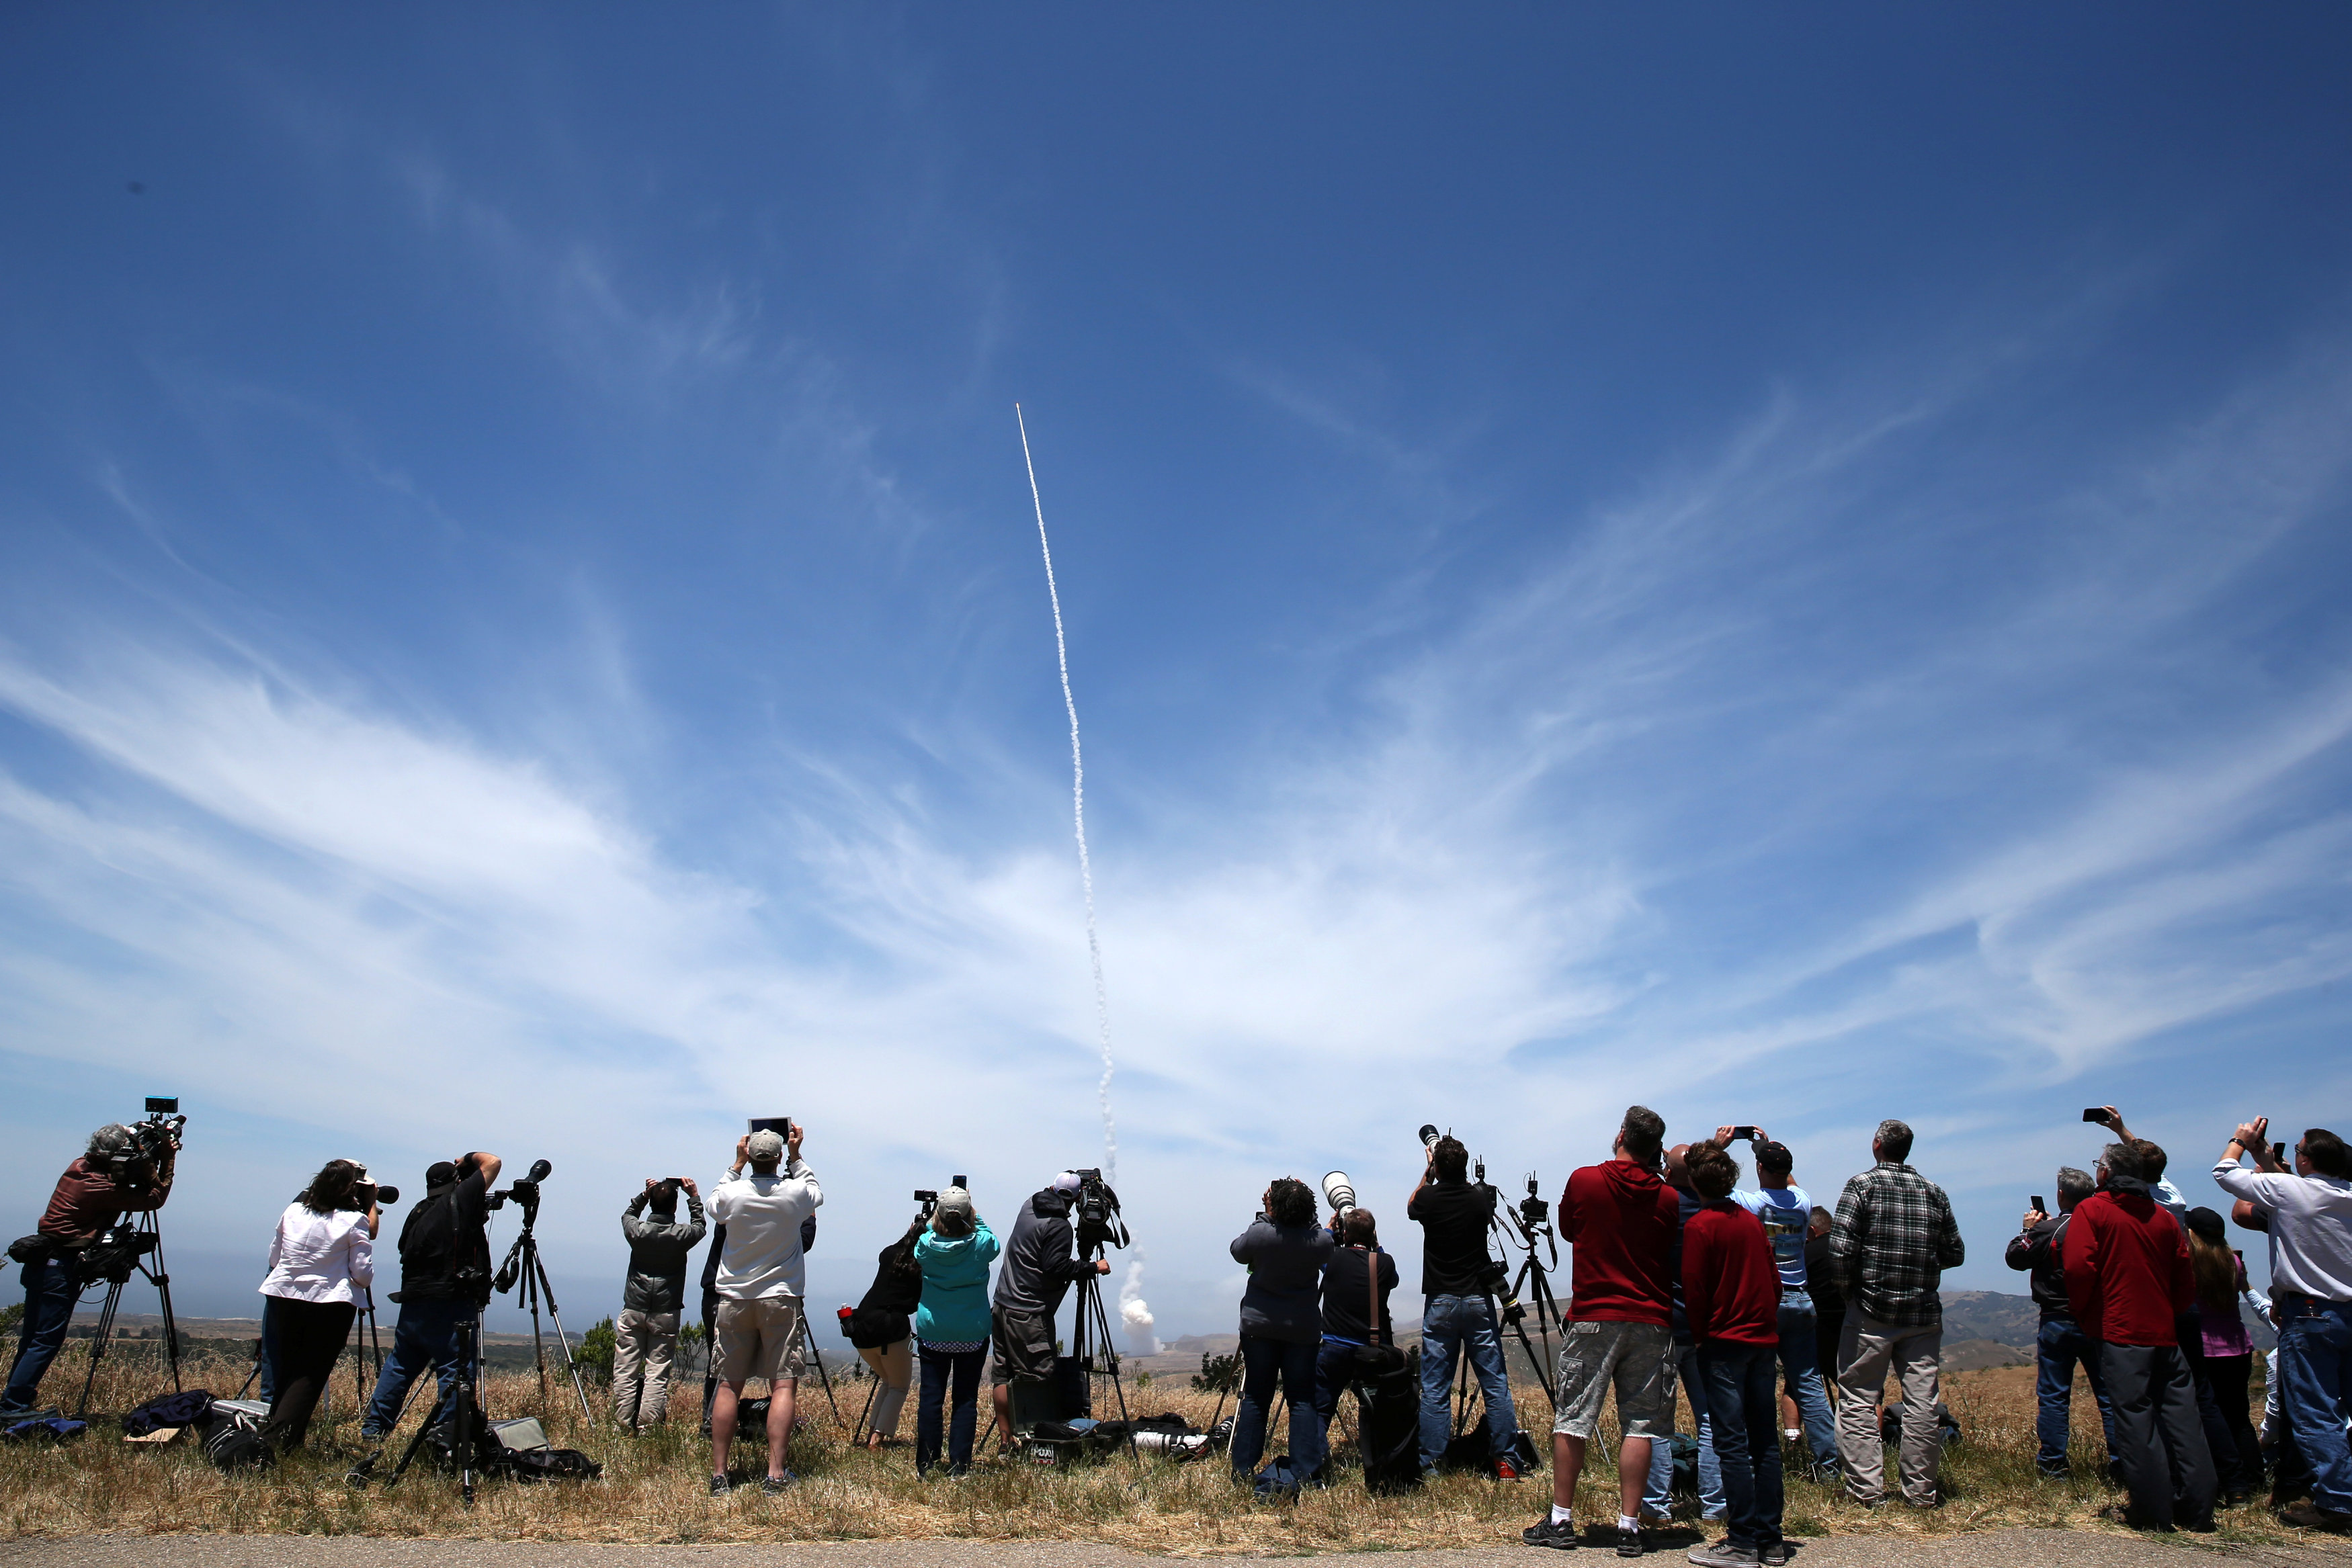 People watch as the Ground-based Midcourse Defense (GMD) element of the U.S. ballistic missile defense system launches during a flight test from Vandenberg Air Force Base, Calif., on May 30, 2017. (REUTERS/Lucy Nicholson)